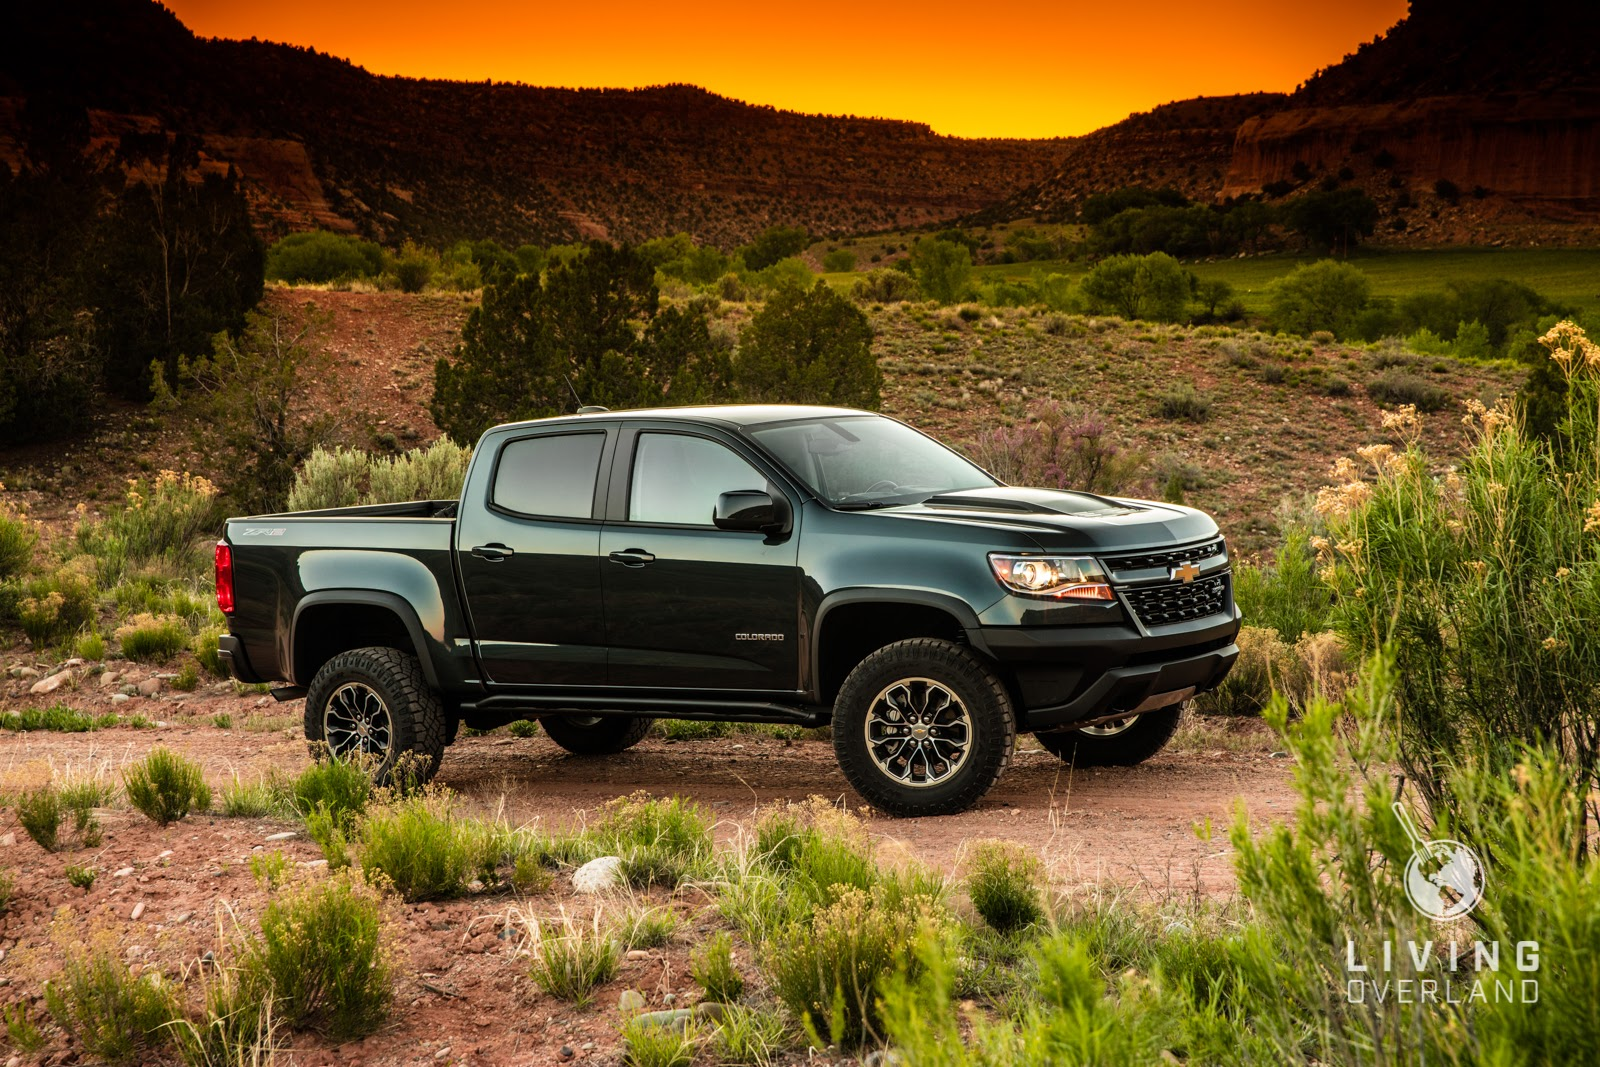 2017 Chevy Colorado Zr2 >> 2017 Chevrolet Colorado ZR2 | Test Drive